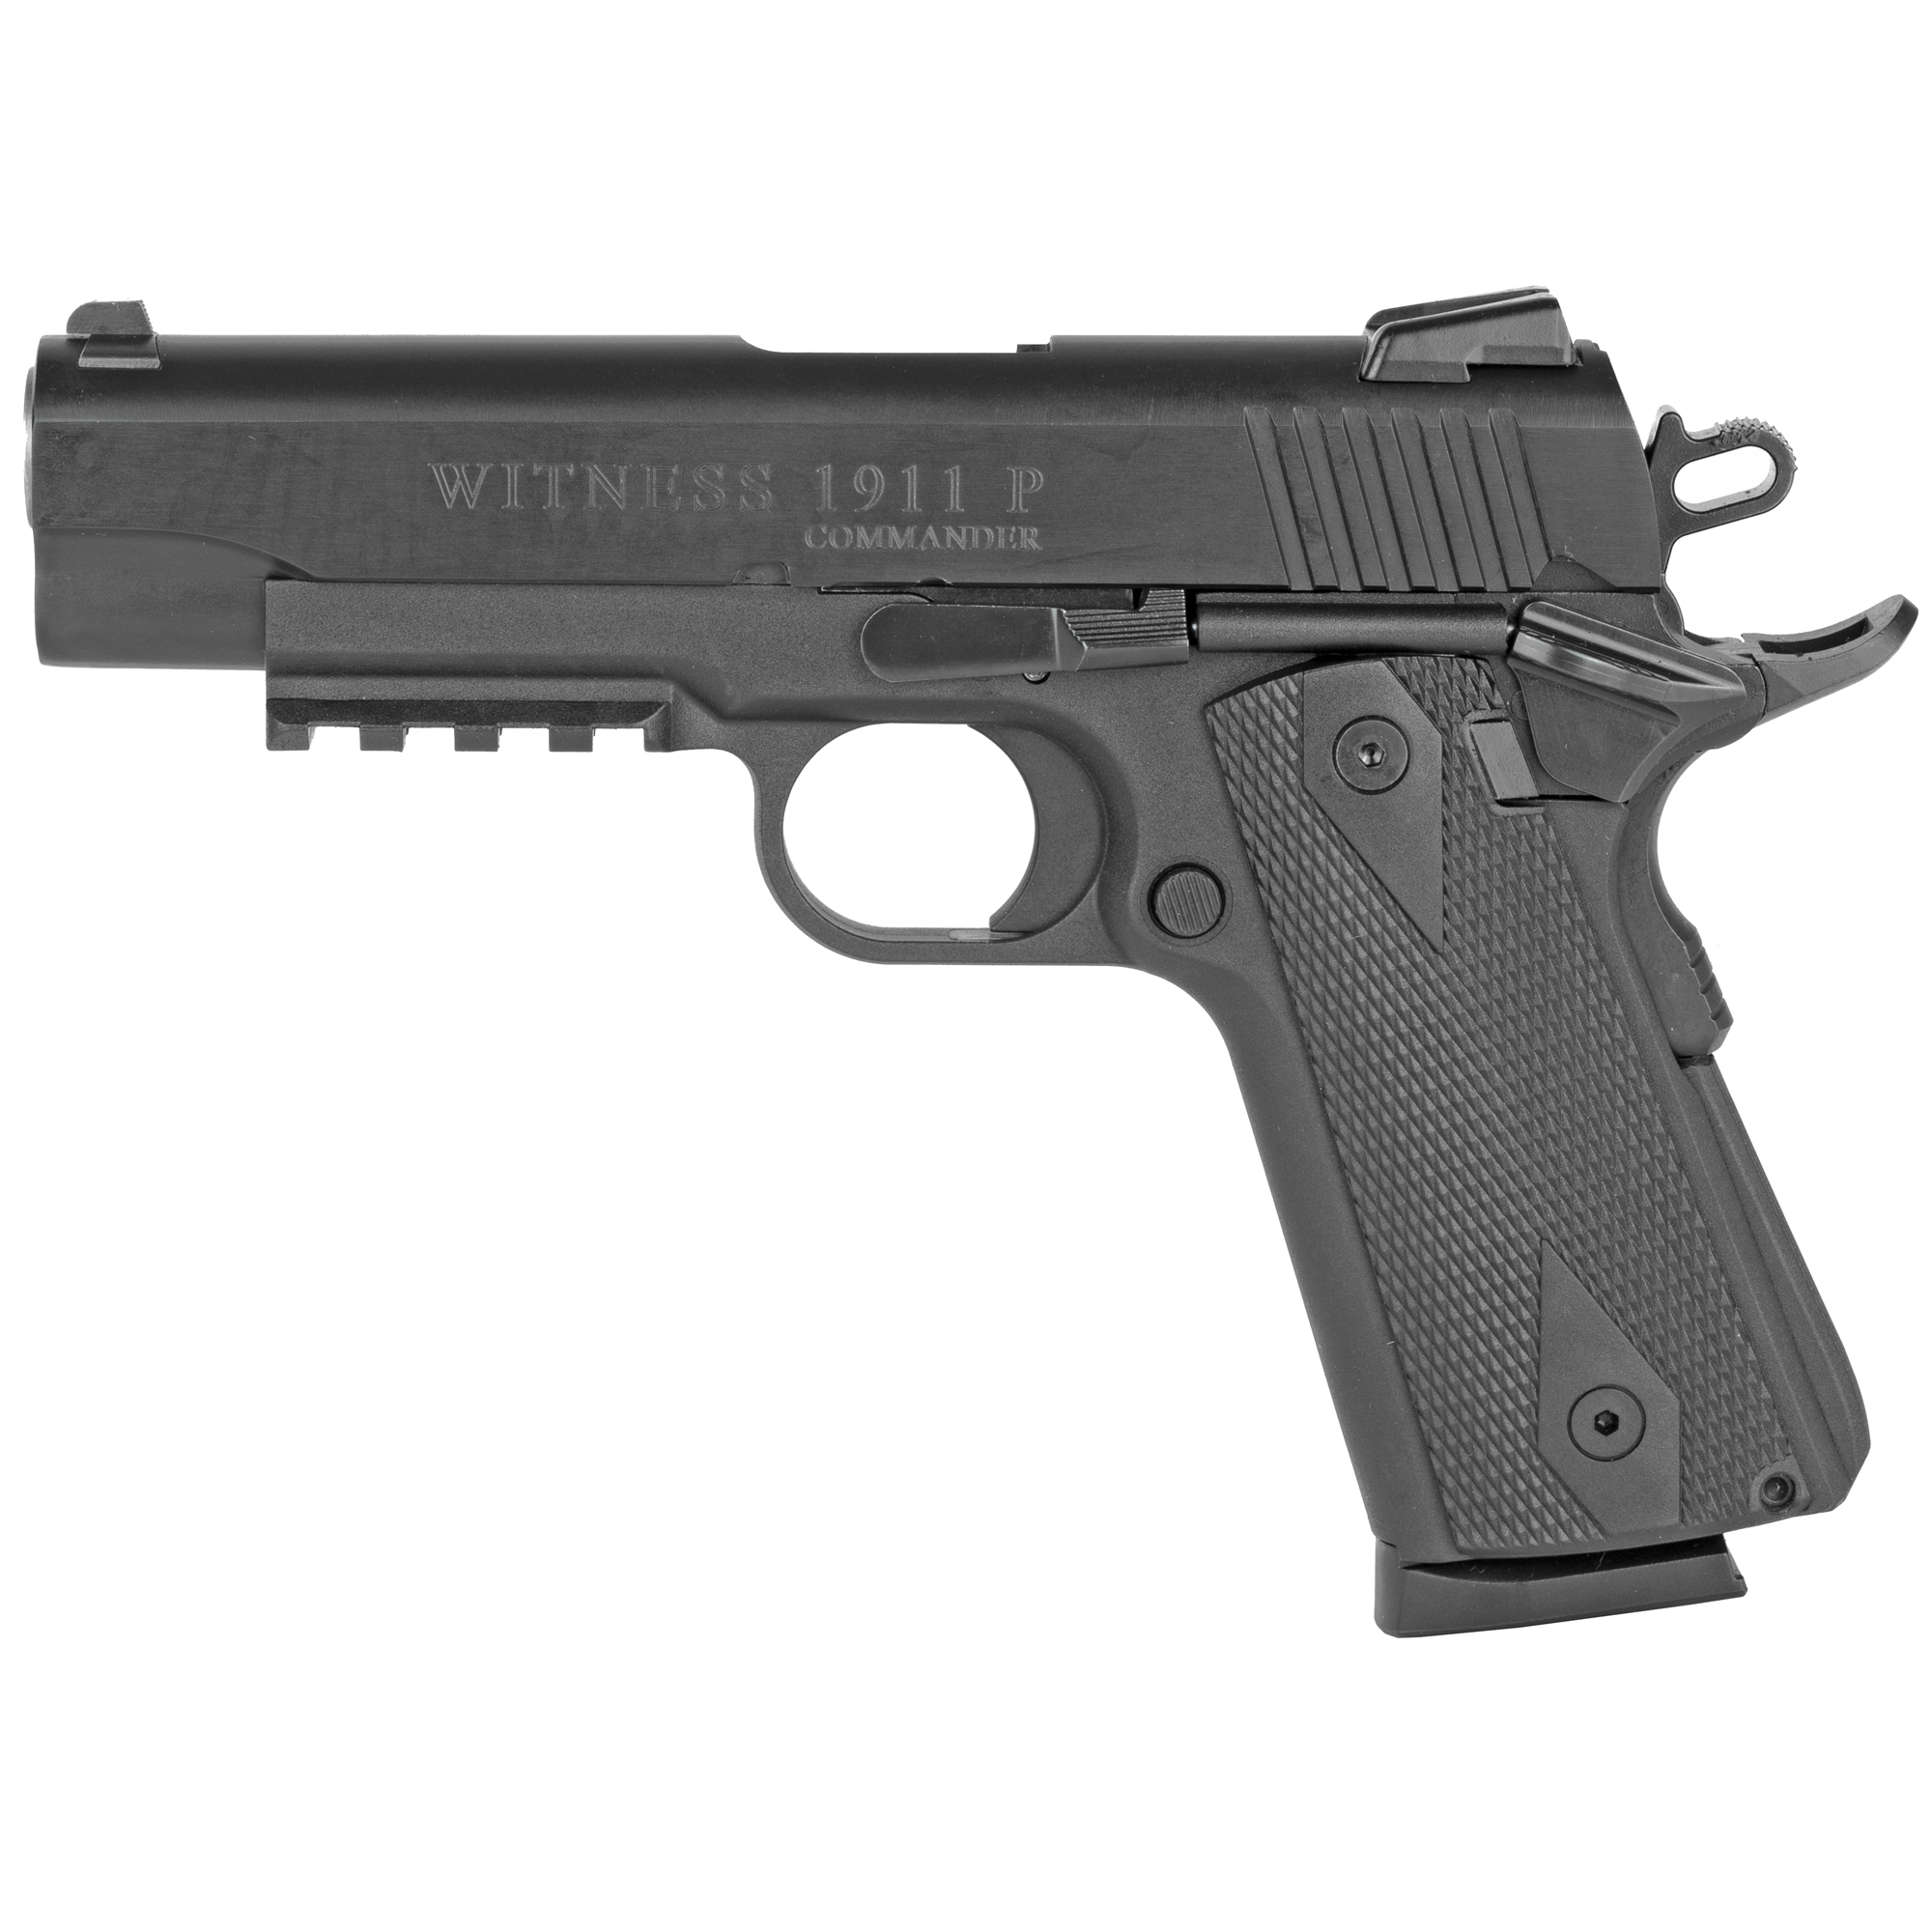 "Witness the FIRST Polymer Single Stack 1911 Pistol"" similar to that of the classic 1911 with the same dimensions and technical characteristics; ideal for Target Shooting"" I.P.S.C. and I.D.P.A. (SINGLE STACK or PRODUCTION CLASS) Competitions."